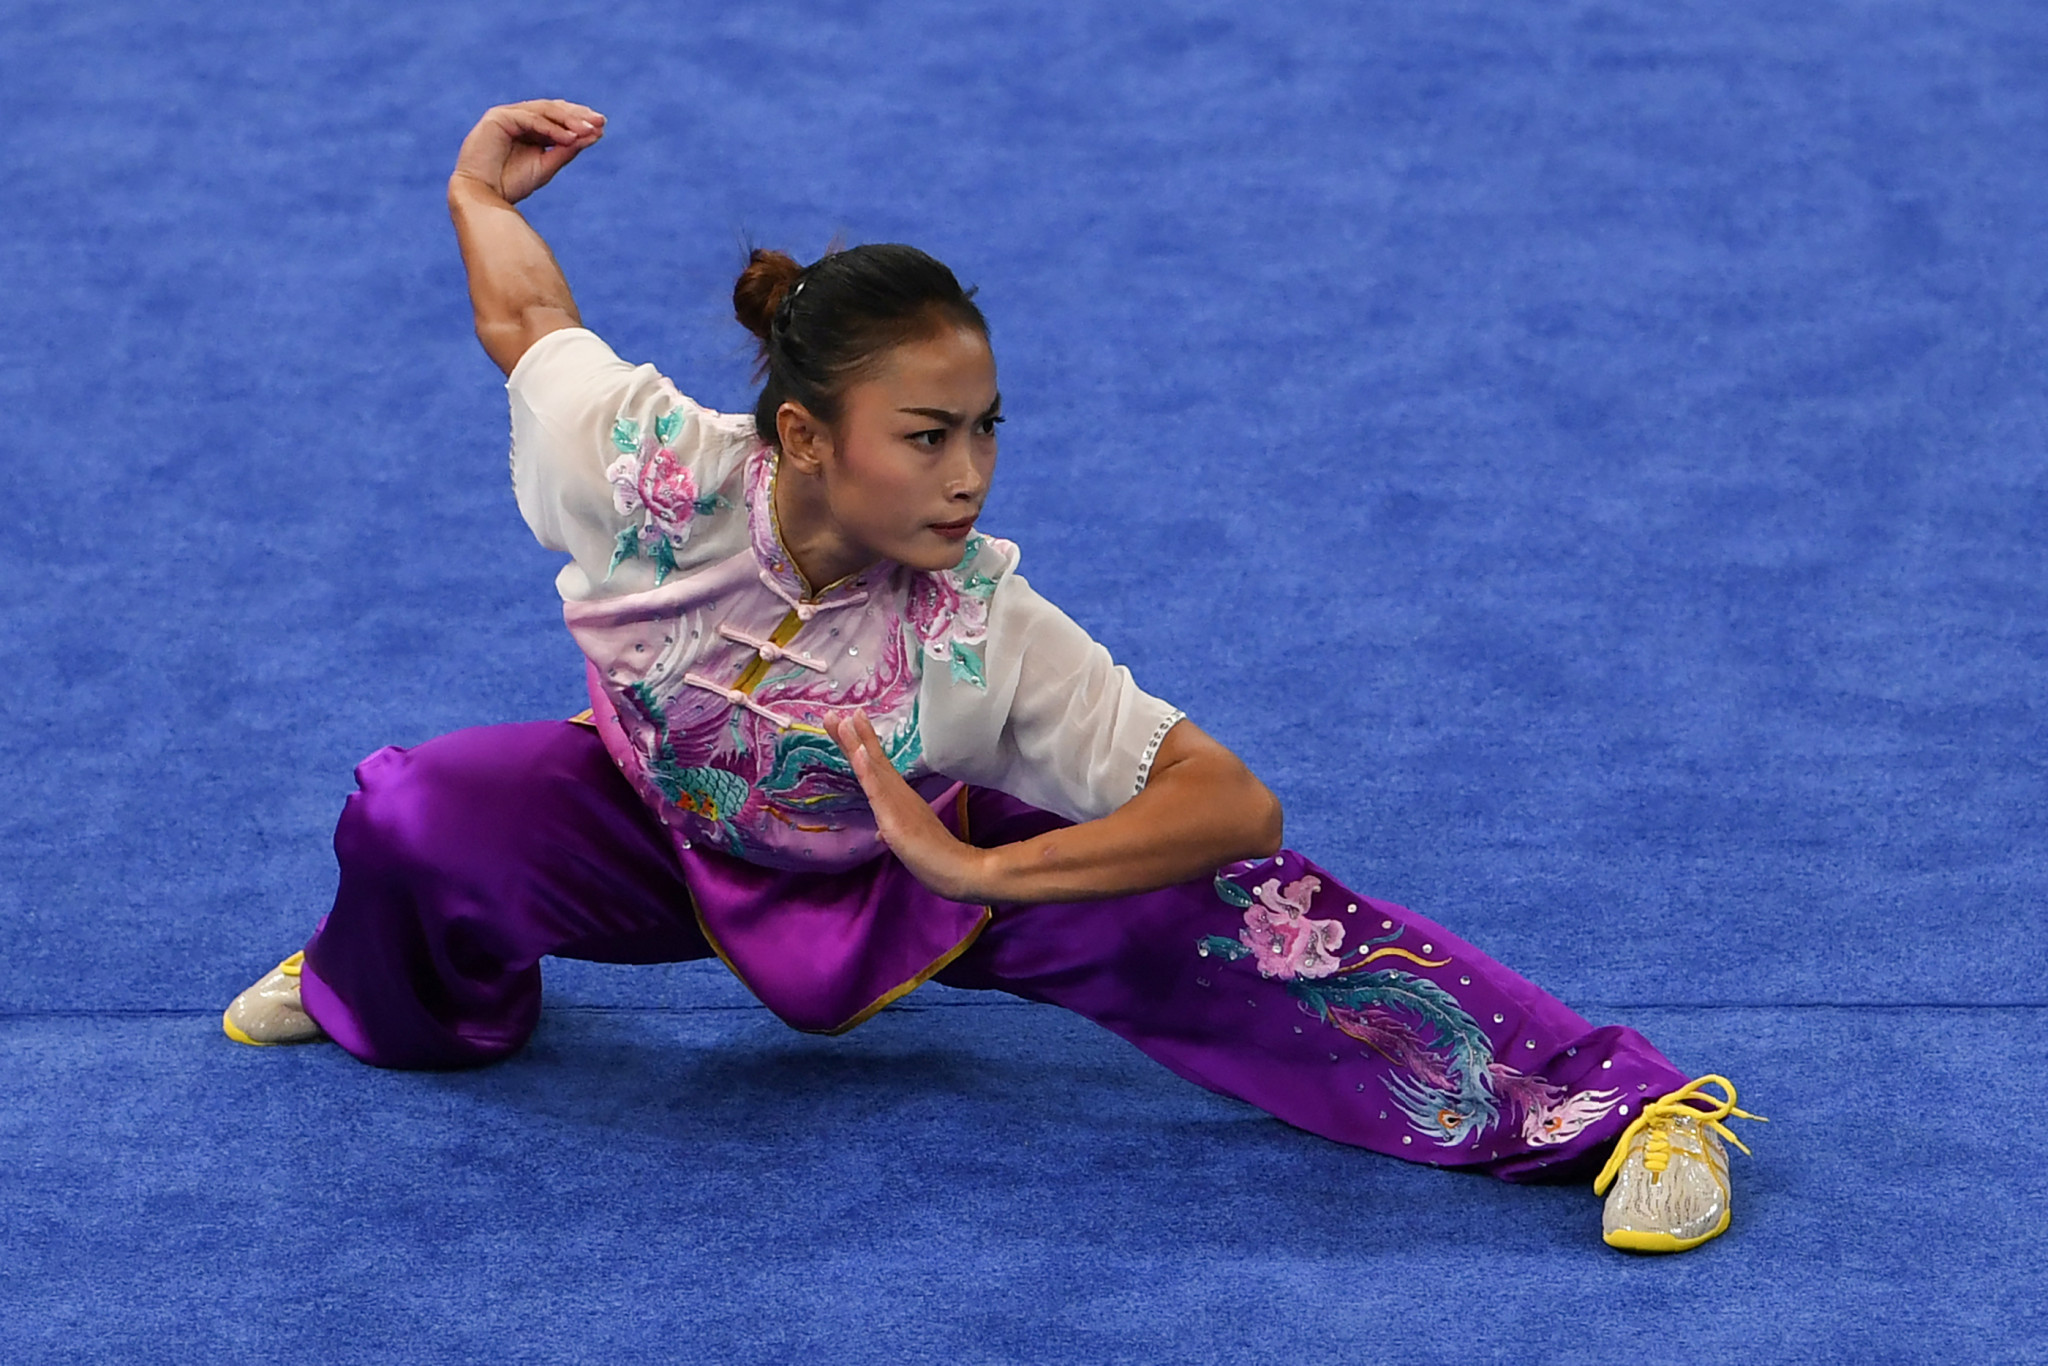 Wushu is set to make its Youth Olympic Games debut at Dakar 2026 ©Getty Images